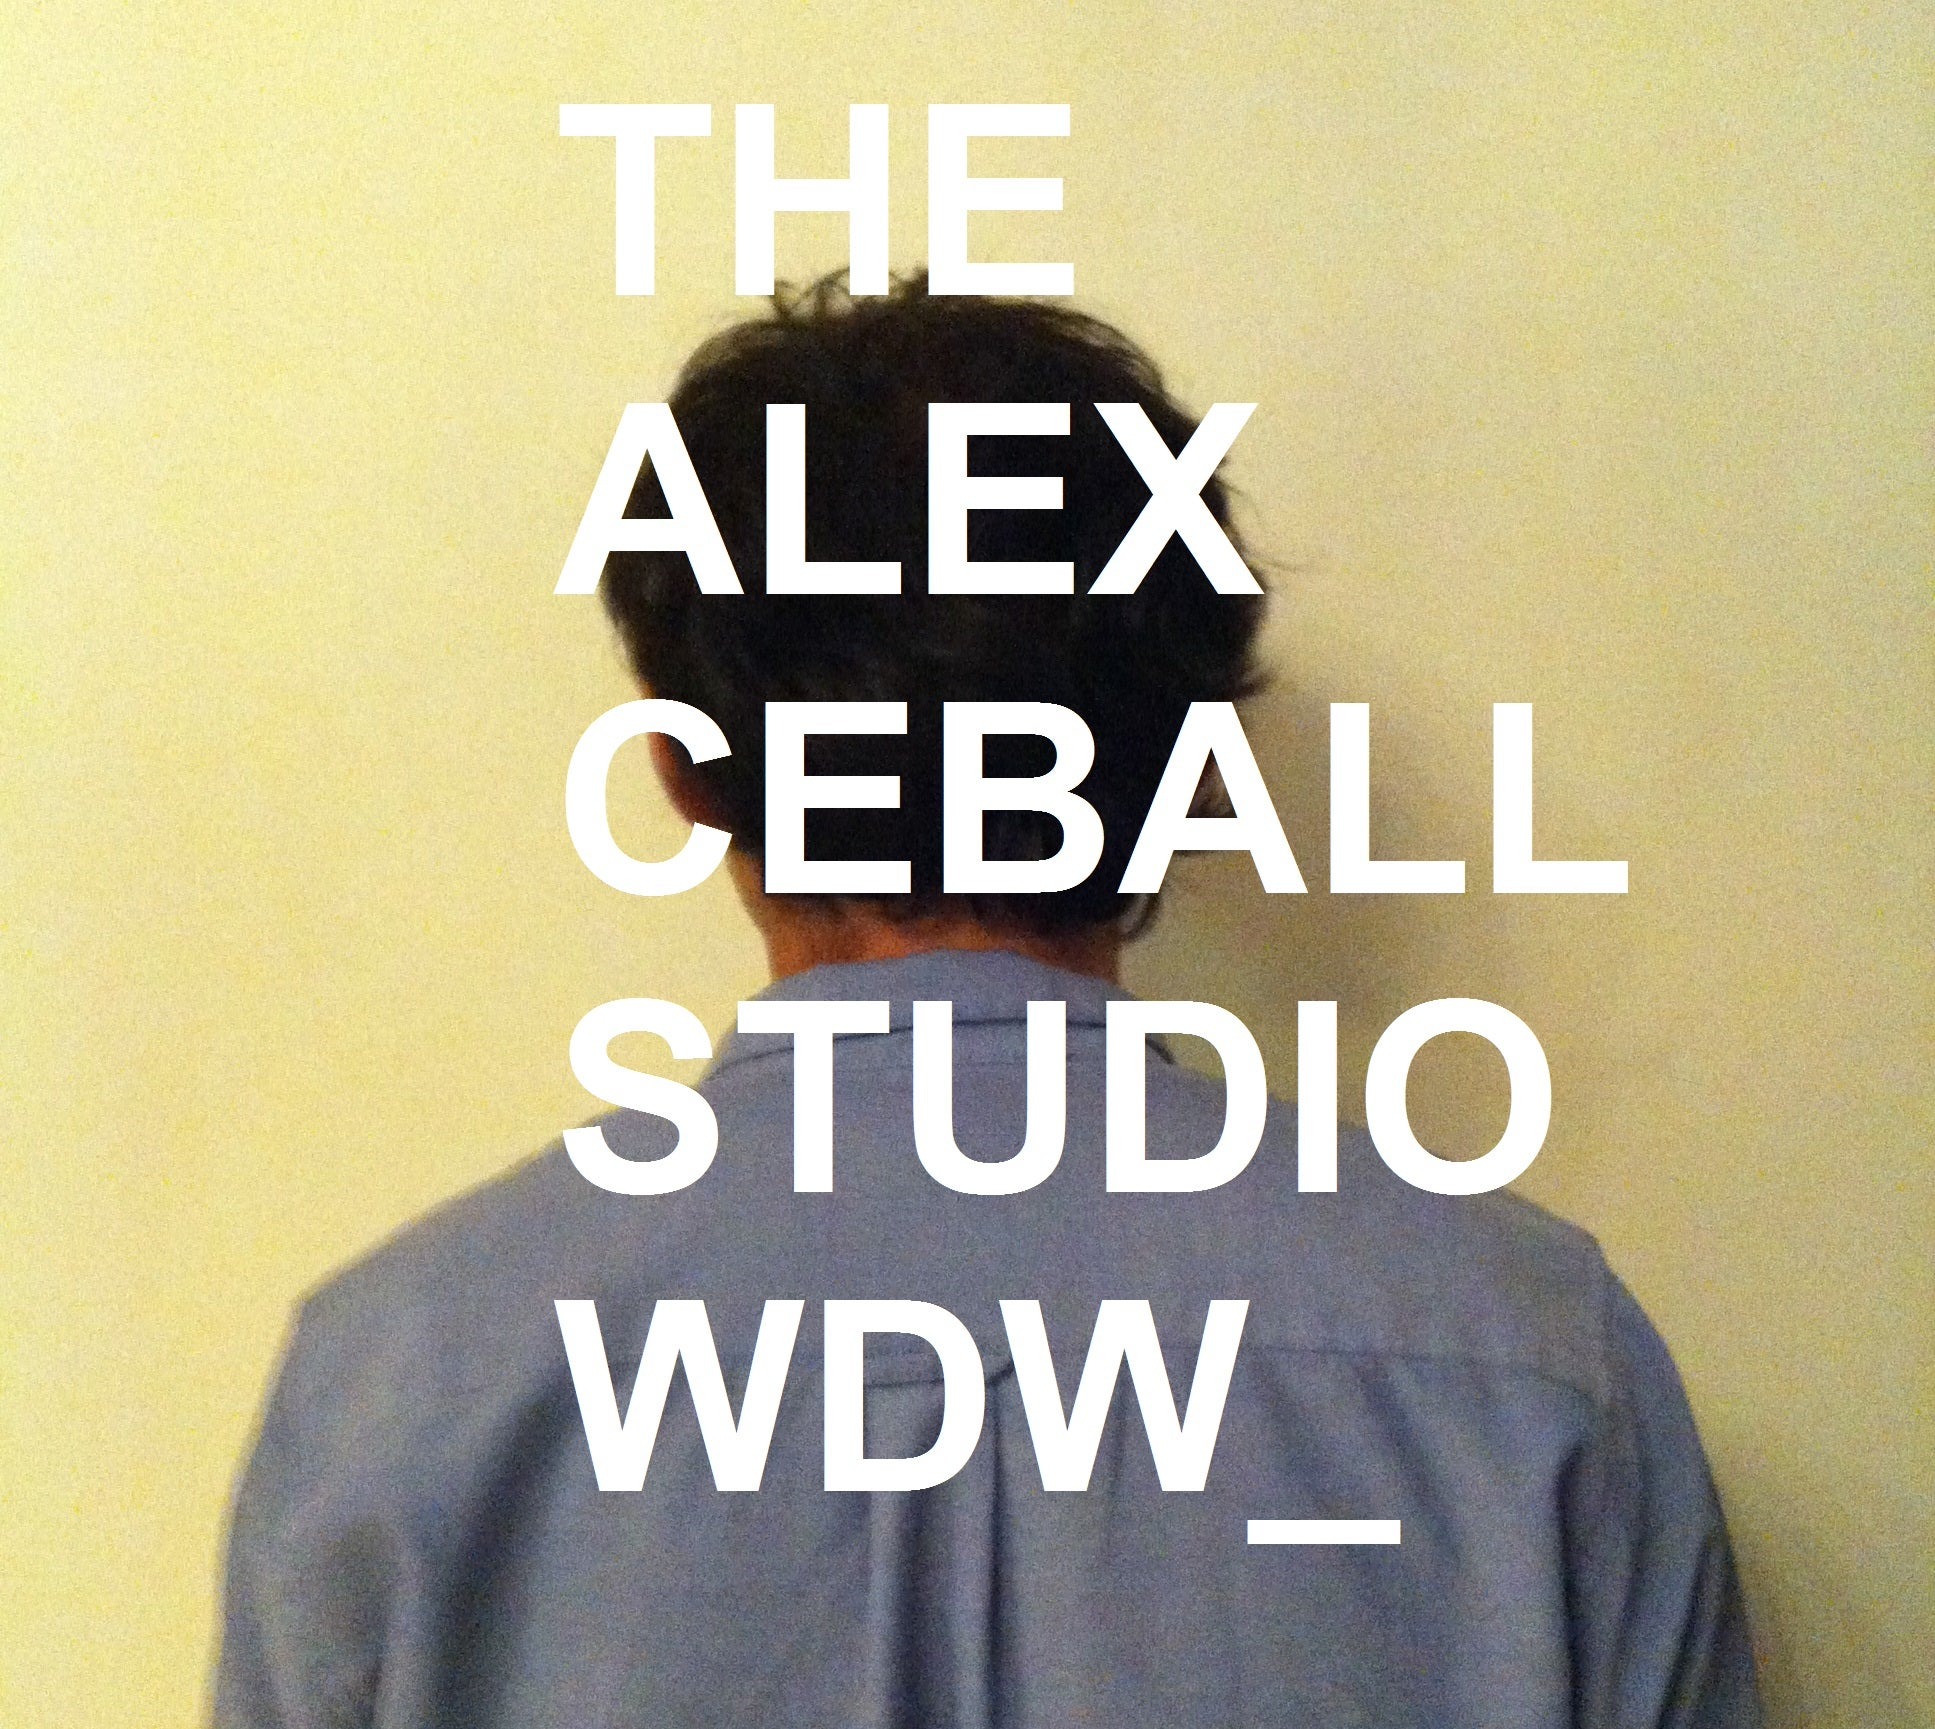 THE ALEX CEBALL SHOP